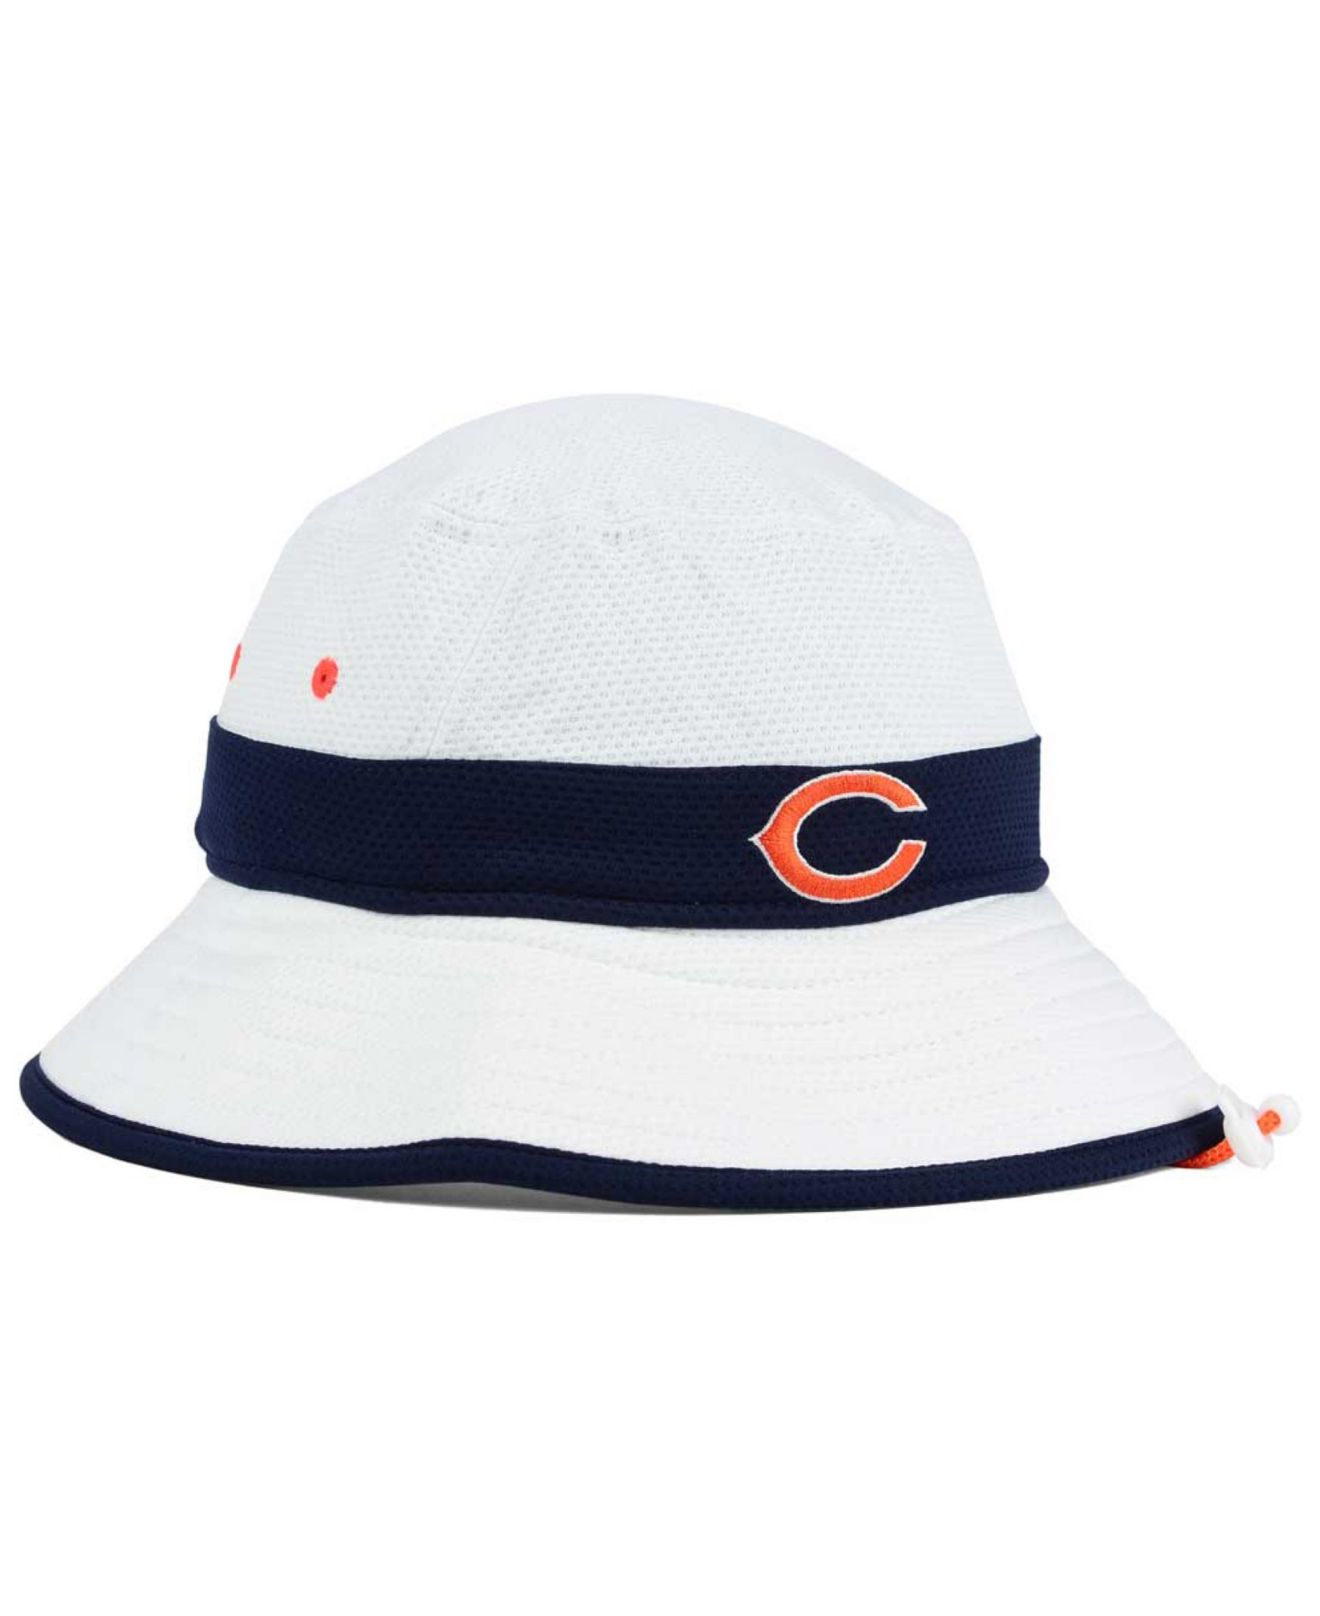 8f0985861ea Lyst - KTZ Chicago Bears Training Camp Official Bucket Hat in Black ...